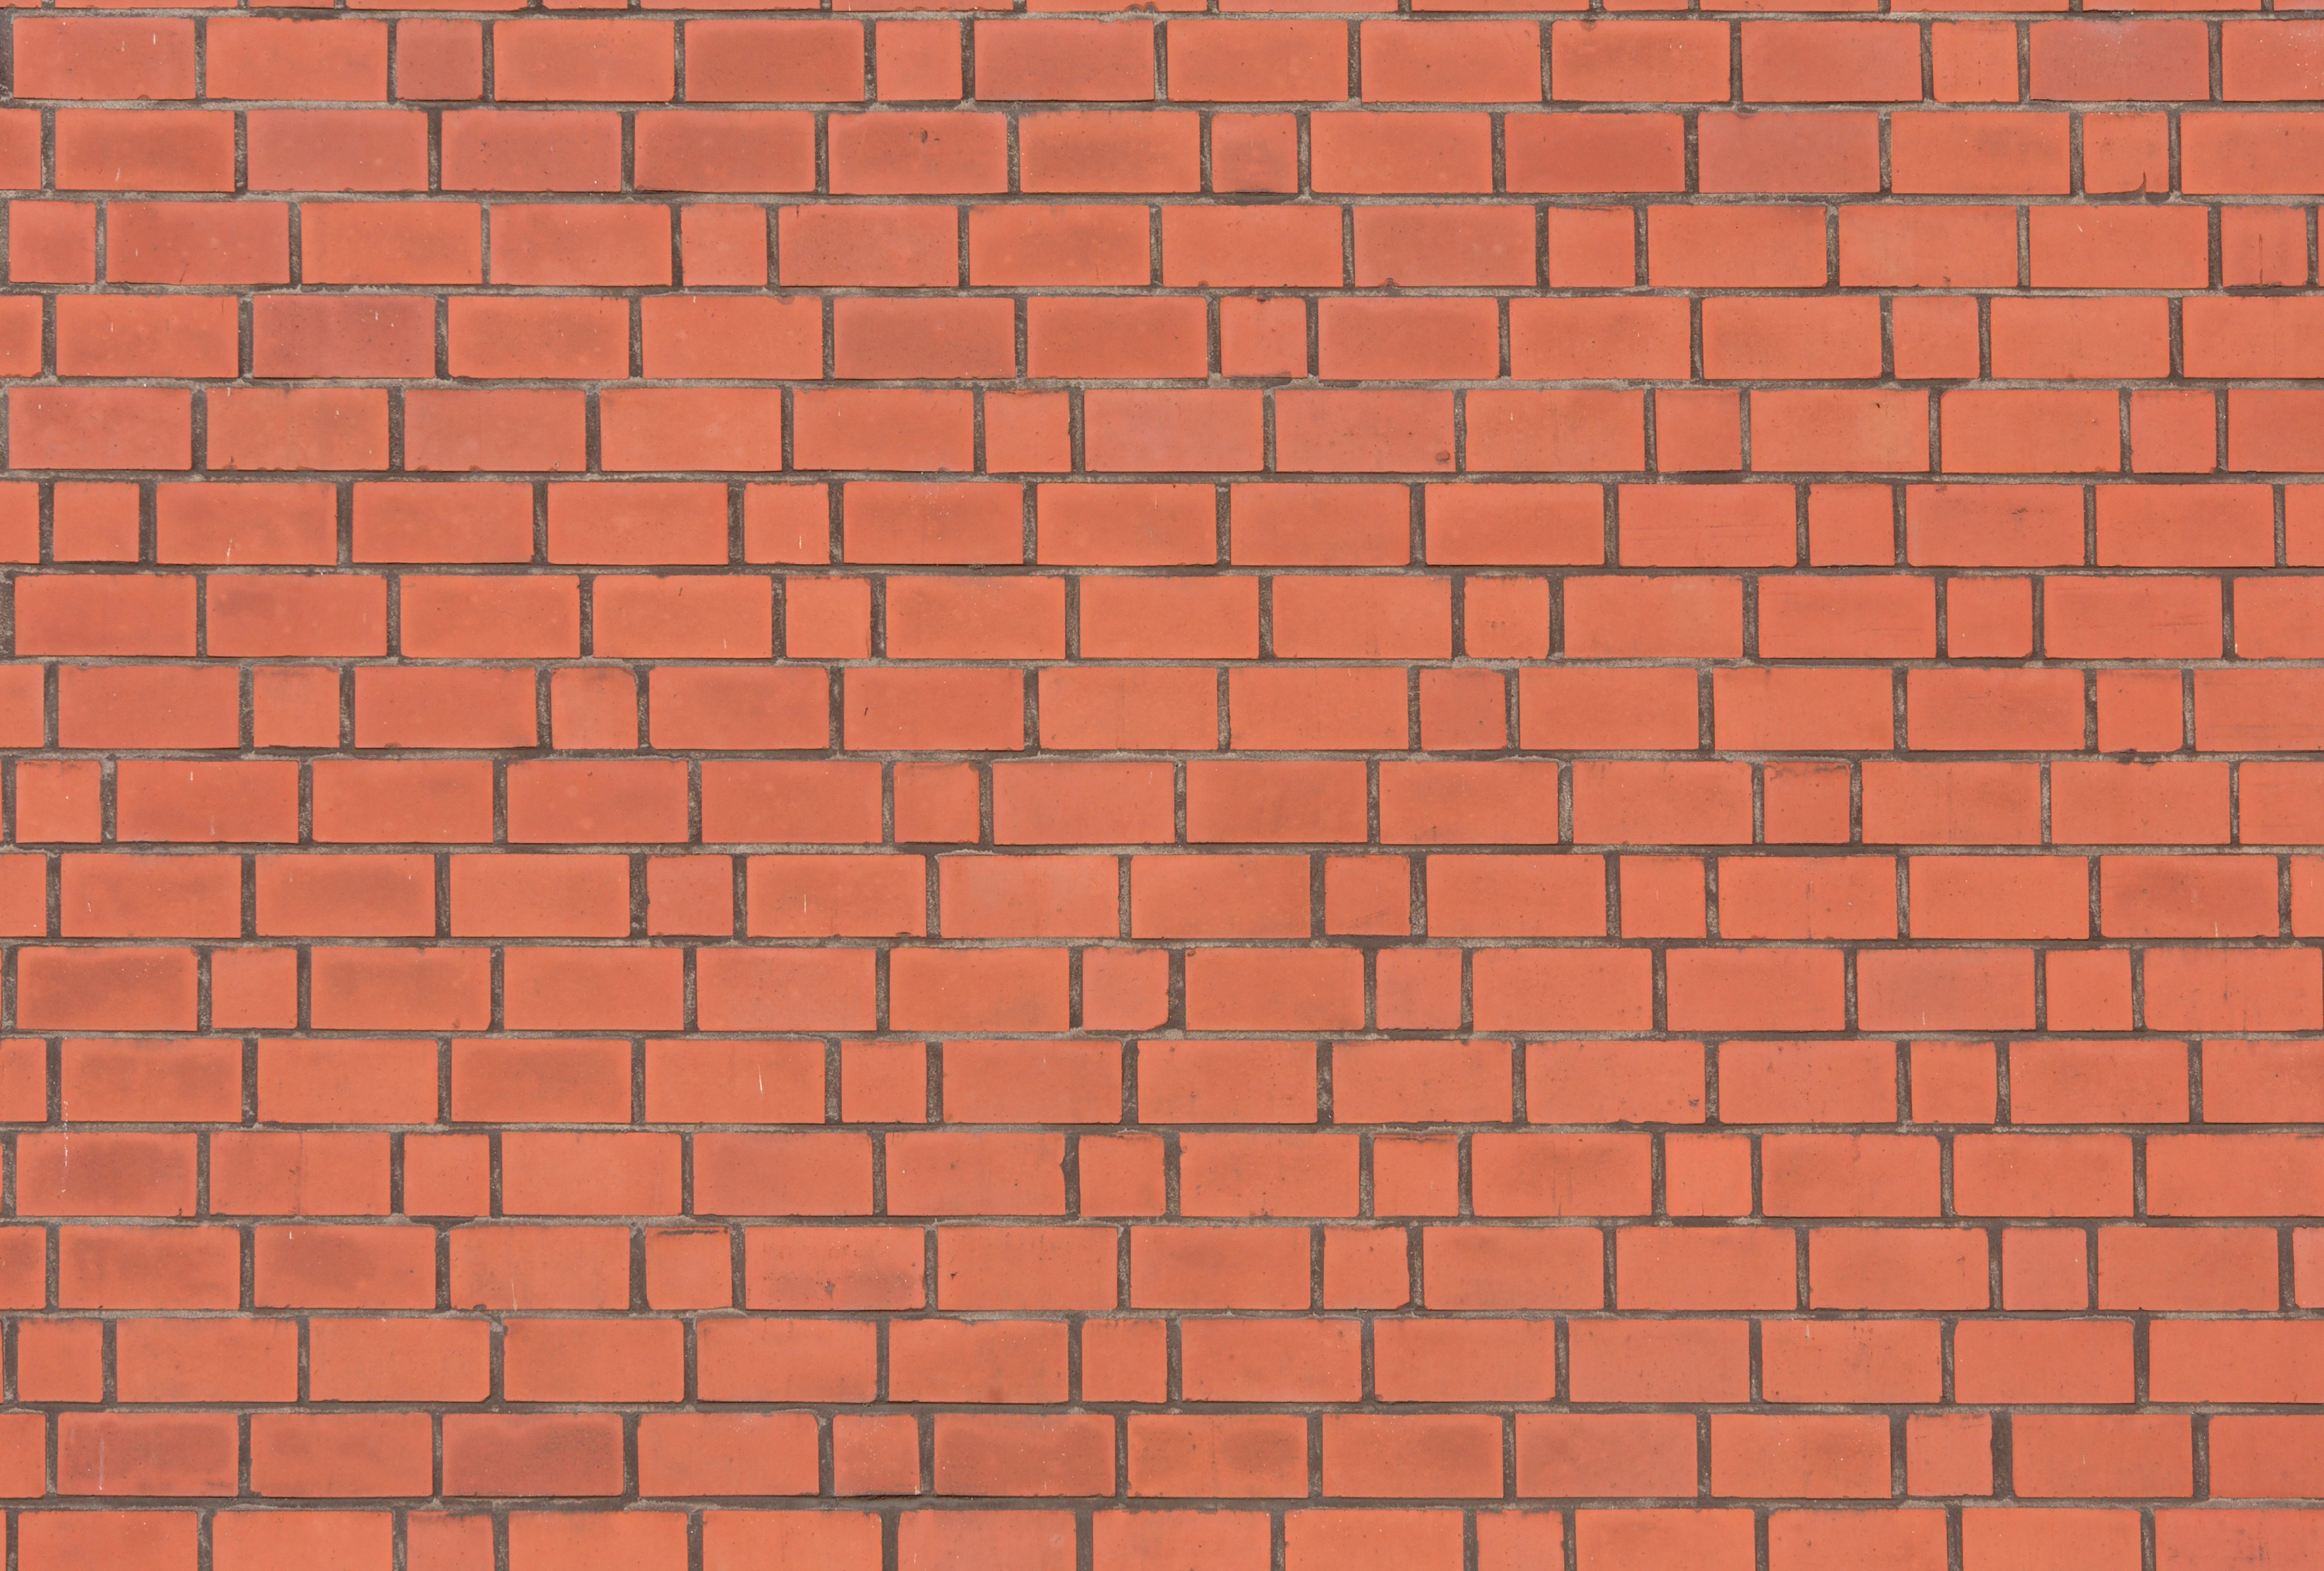 superb masonry bricks Part - 5: superb masonry bricks awesome design